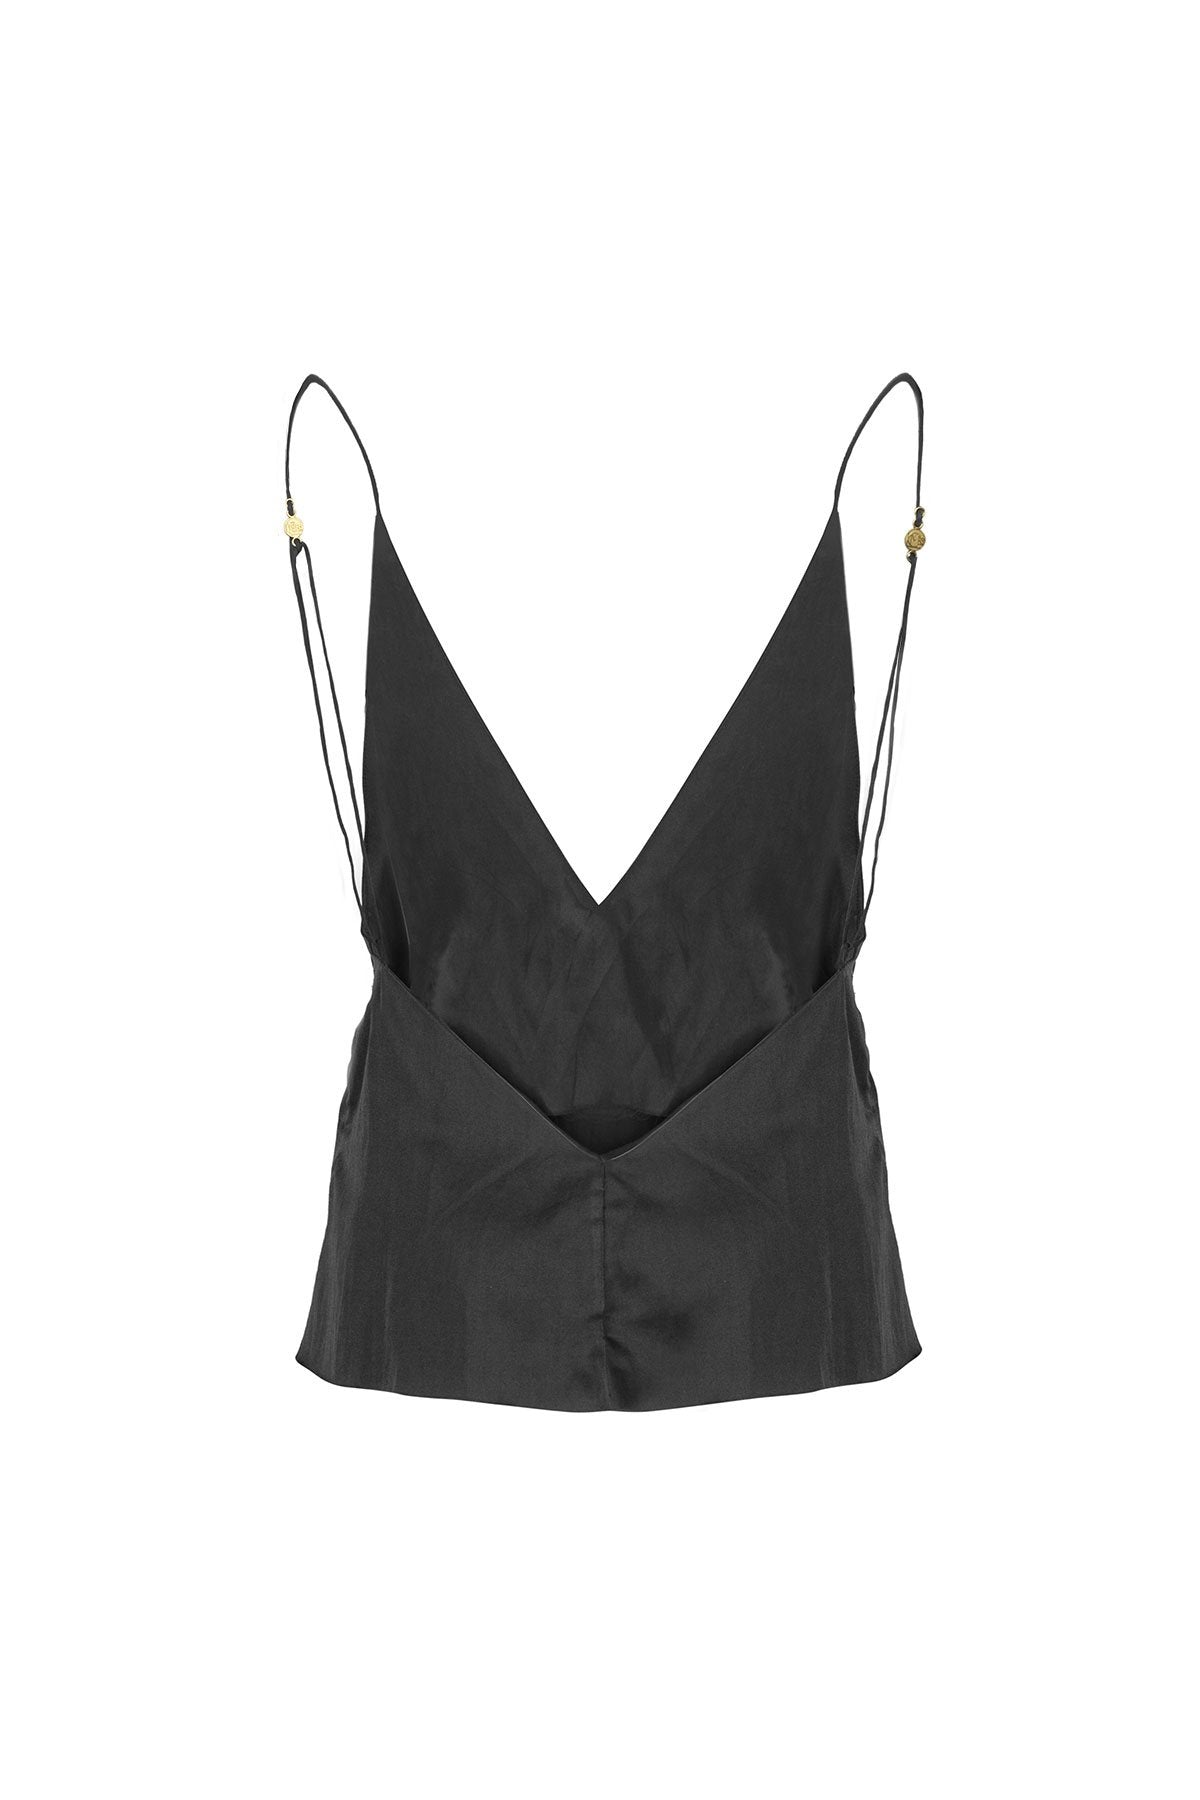 The Klimt Cami Top - Ebony